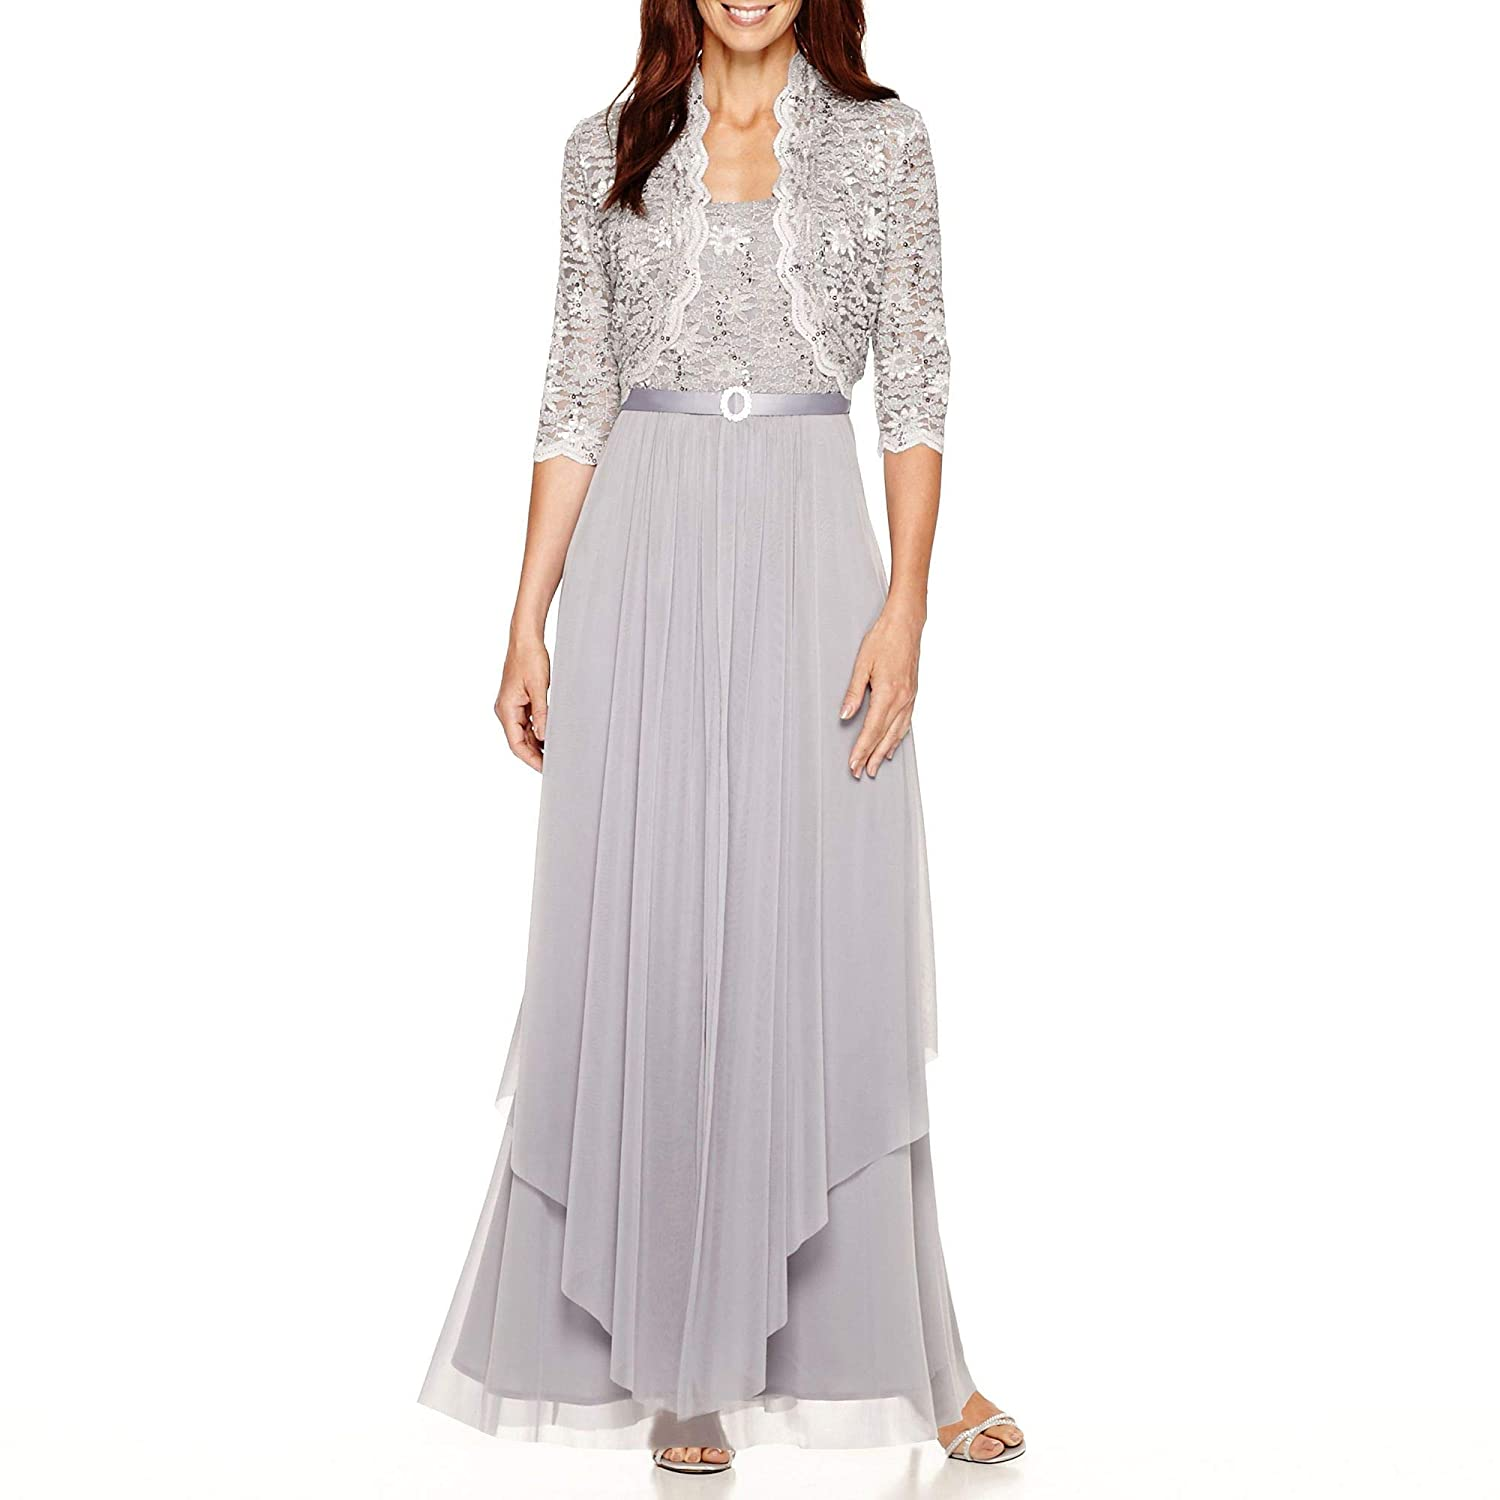 a4360a9f4d R M Richards Womens Sequin Lace Long Jacket Dress - Mother Of The Bride  Dress at Amazon Women s Clothing store